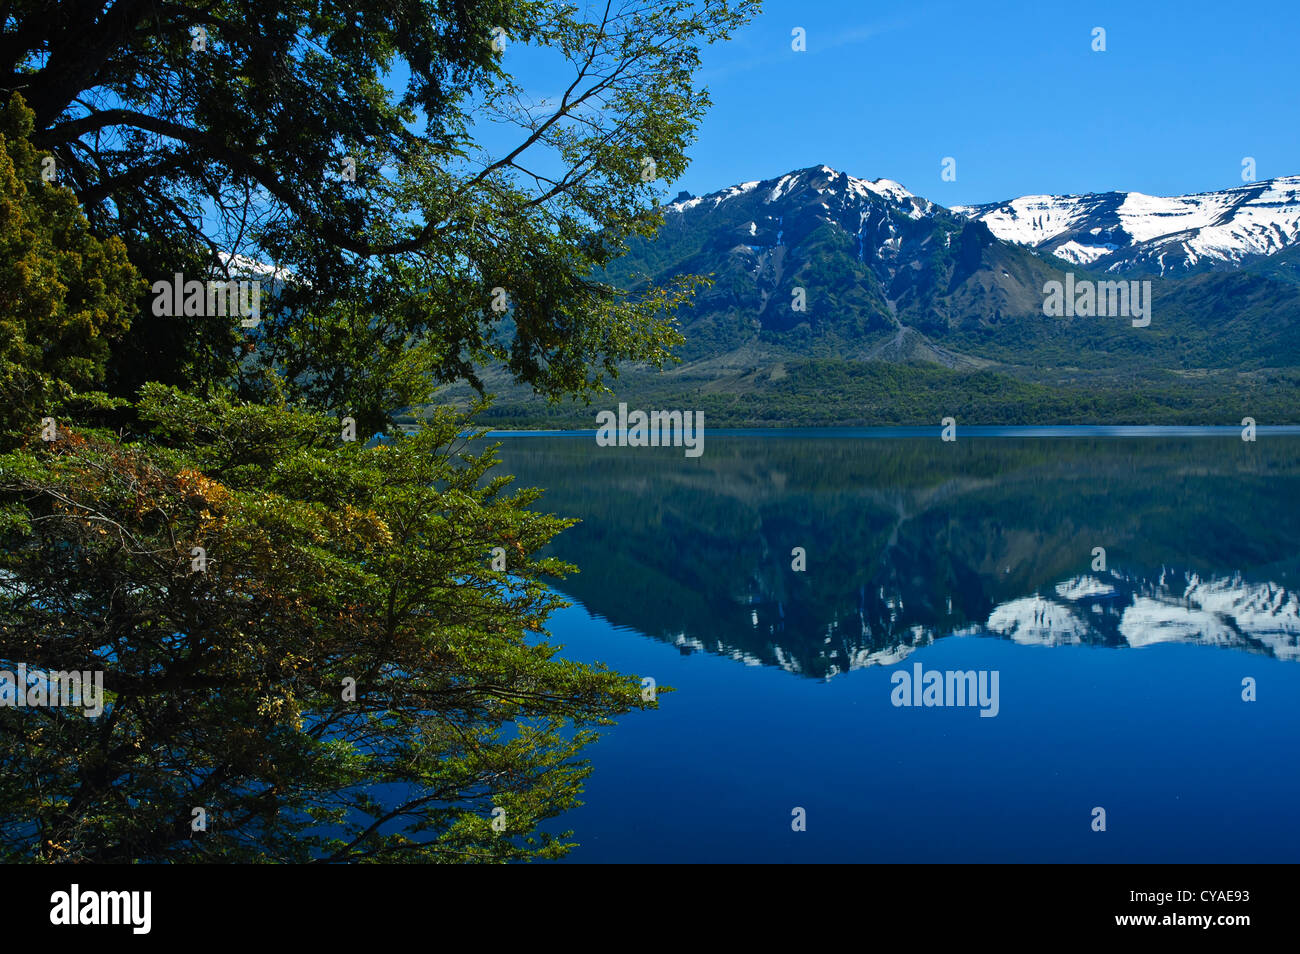 One of the 7 lakes of the Andes with mountains in the background close to San Martin de los Andes, Patagonia, Argentina - Stock Image